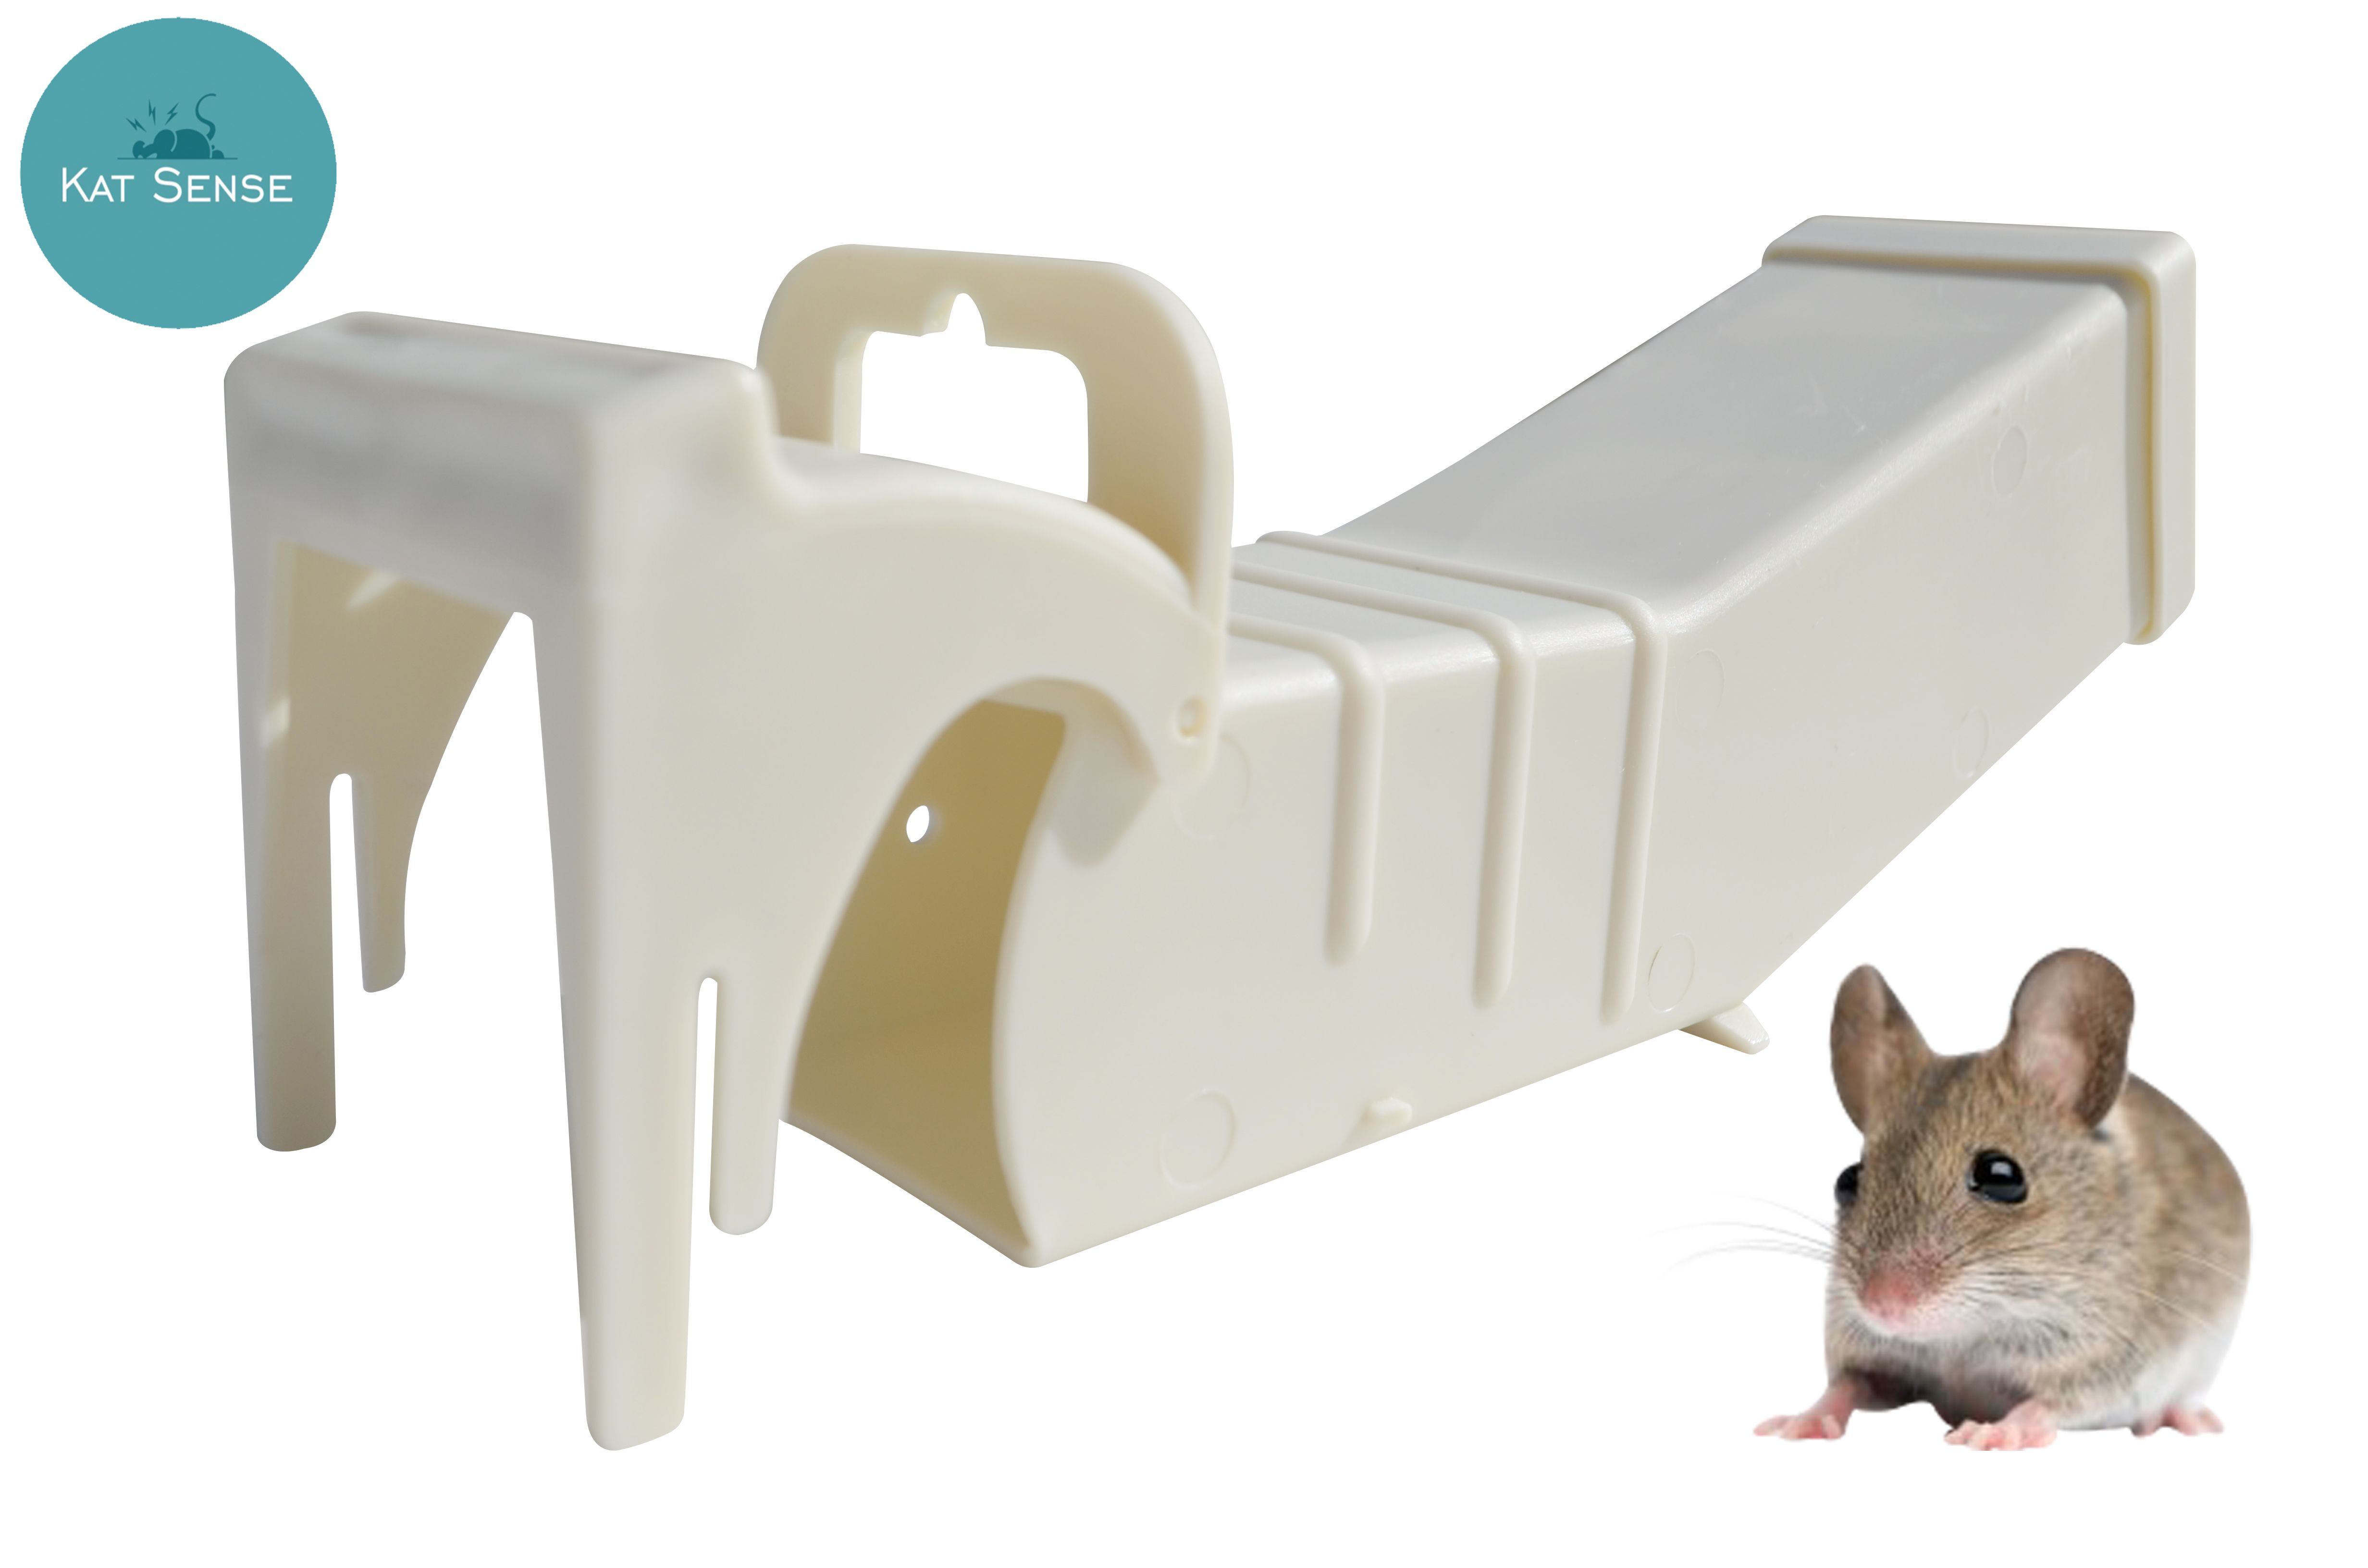 If you want to get rid of mice inside your property but